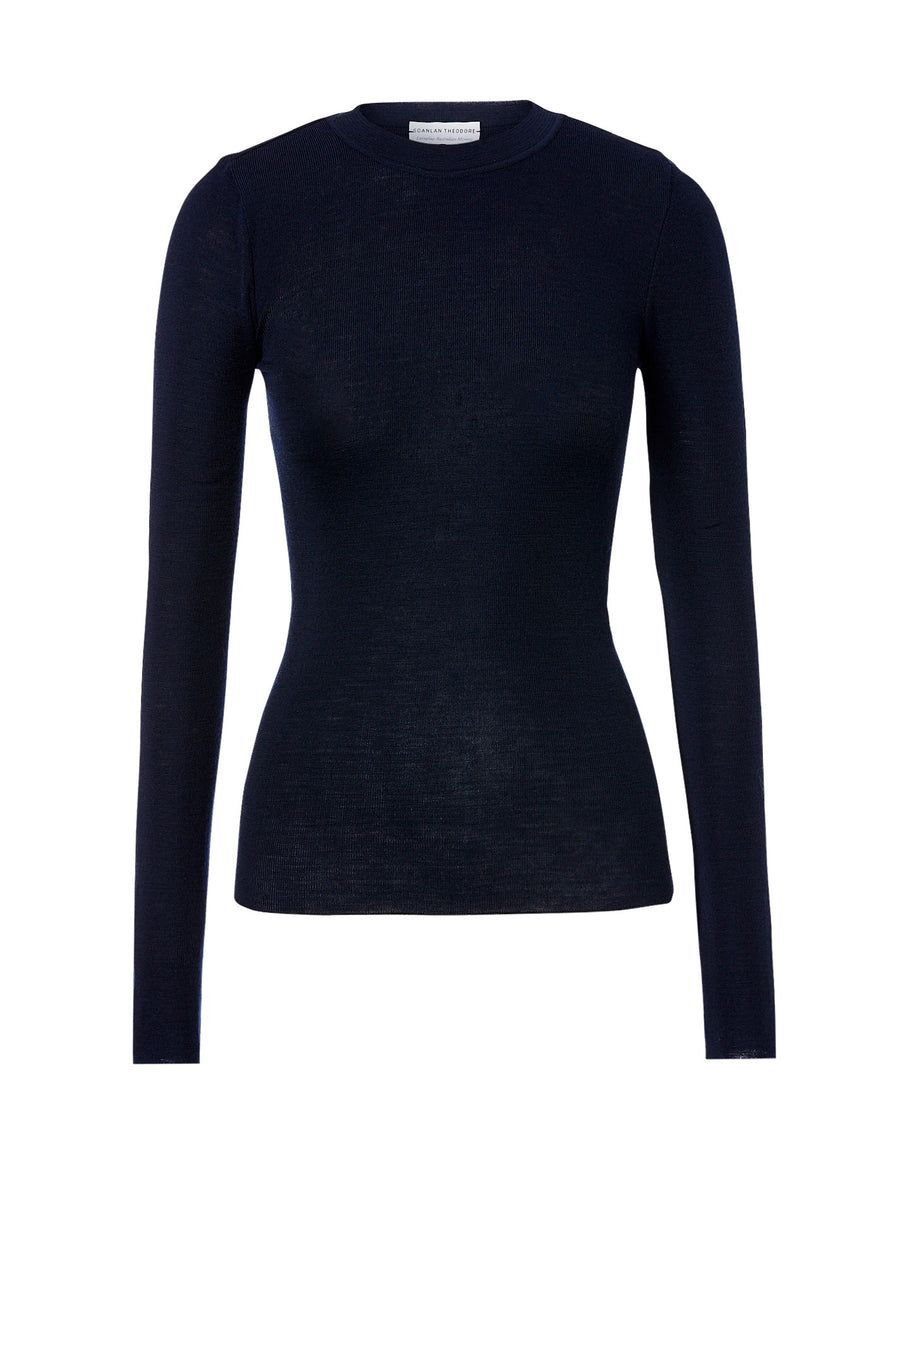 Babywool Crew Neck Sweater Navy - Scanlan Theodore